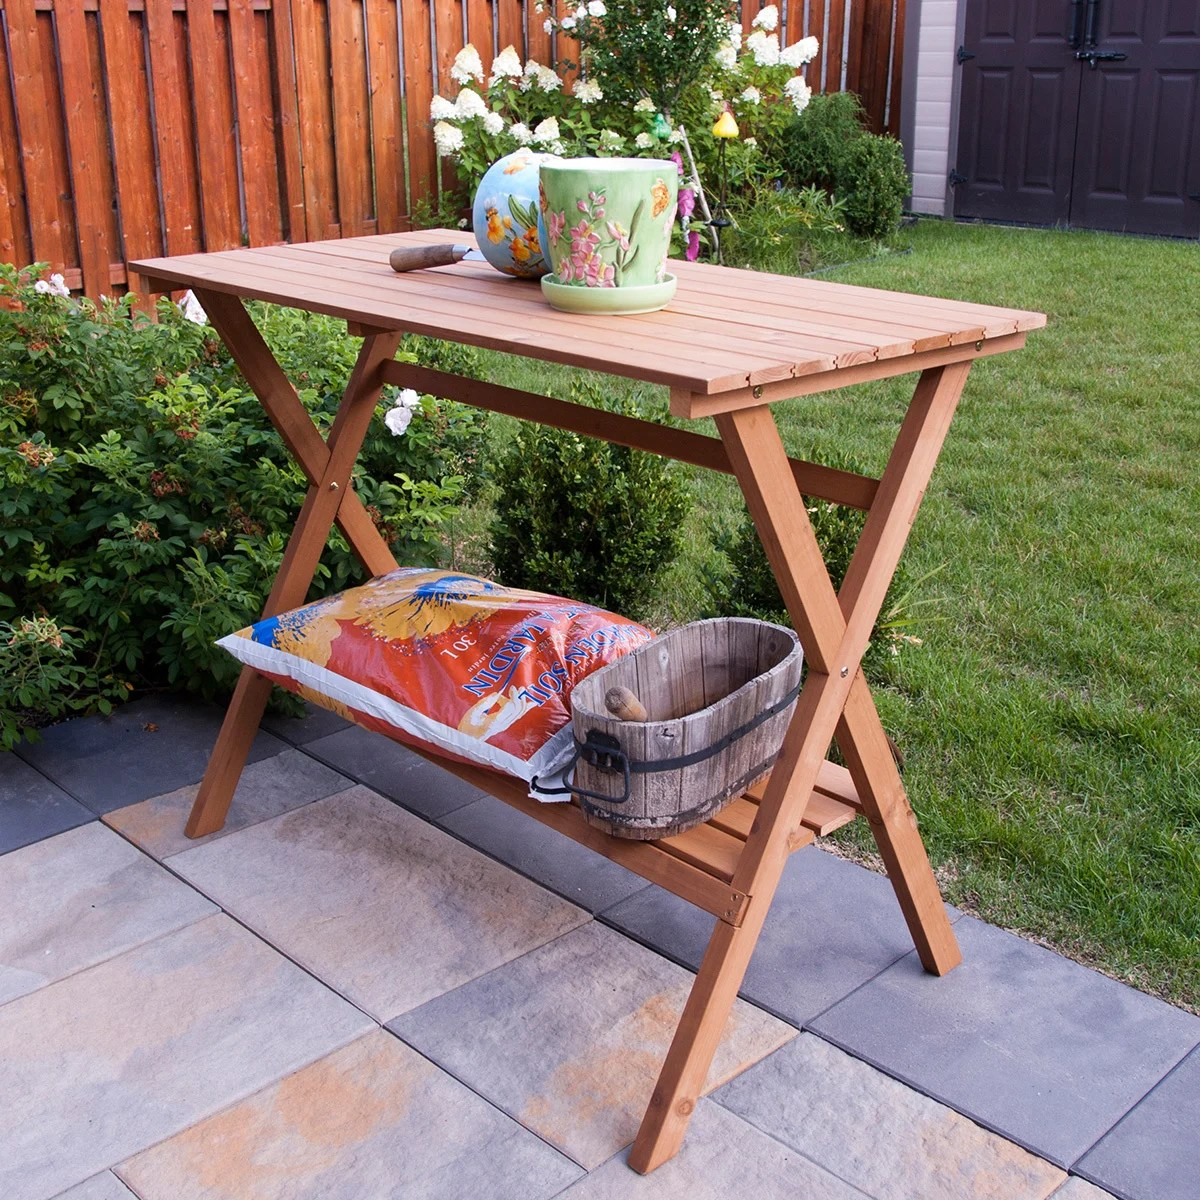 Planting Tables For Sale Buy Potting Tables Online At Overstock Our Best Outdoor Decor Deals